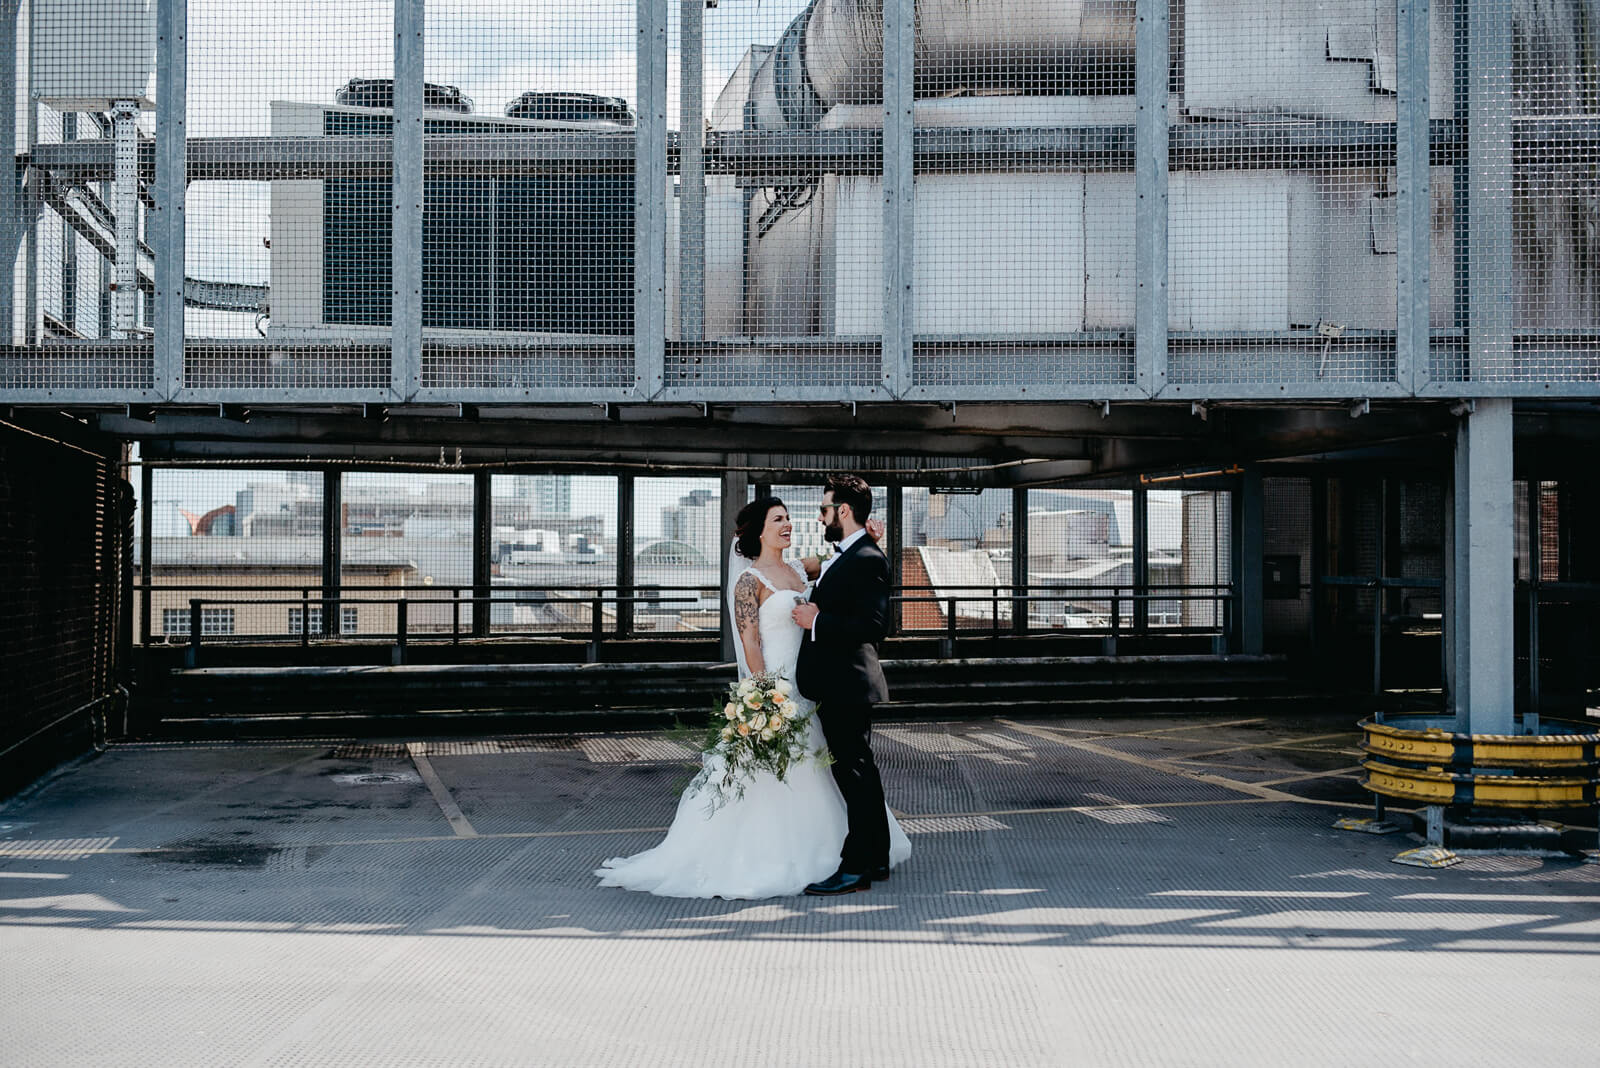 Bride and groom in industrial setting for alternative, modern wedding portraits in the city